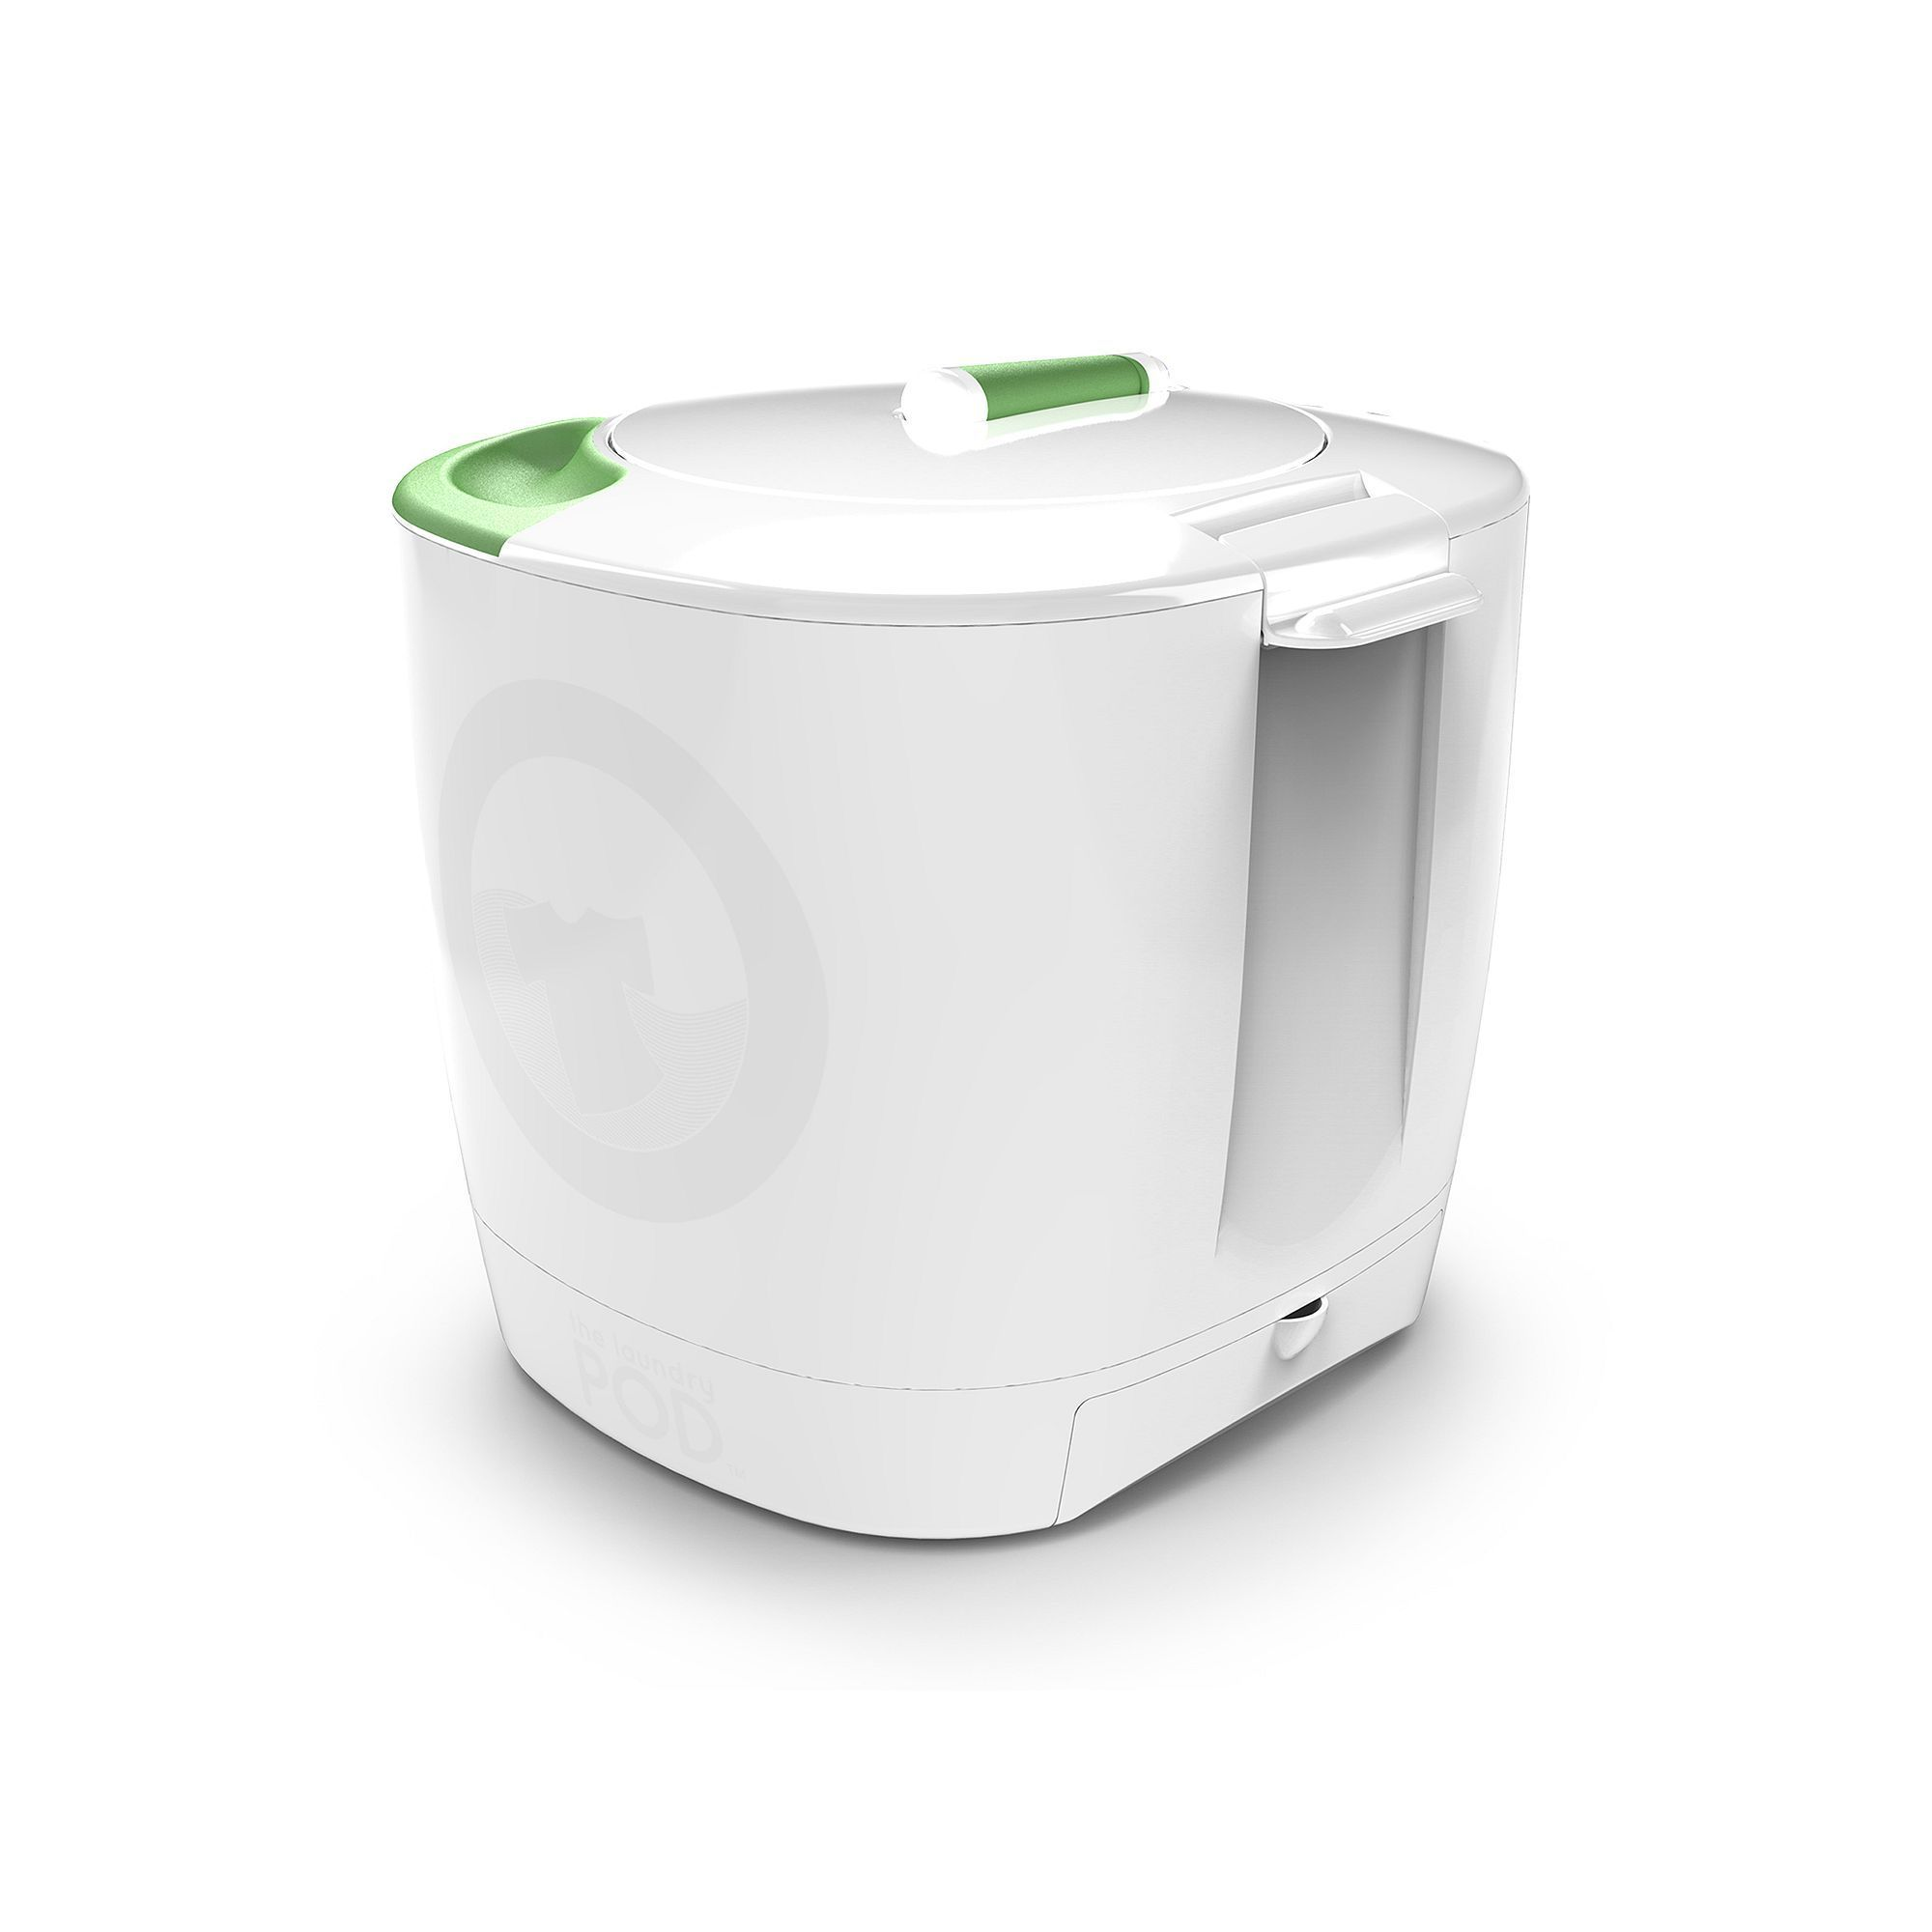 The Laundry POD Non Electric Portable Clothes Washer, White